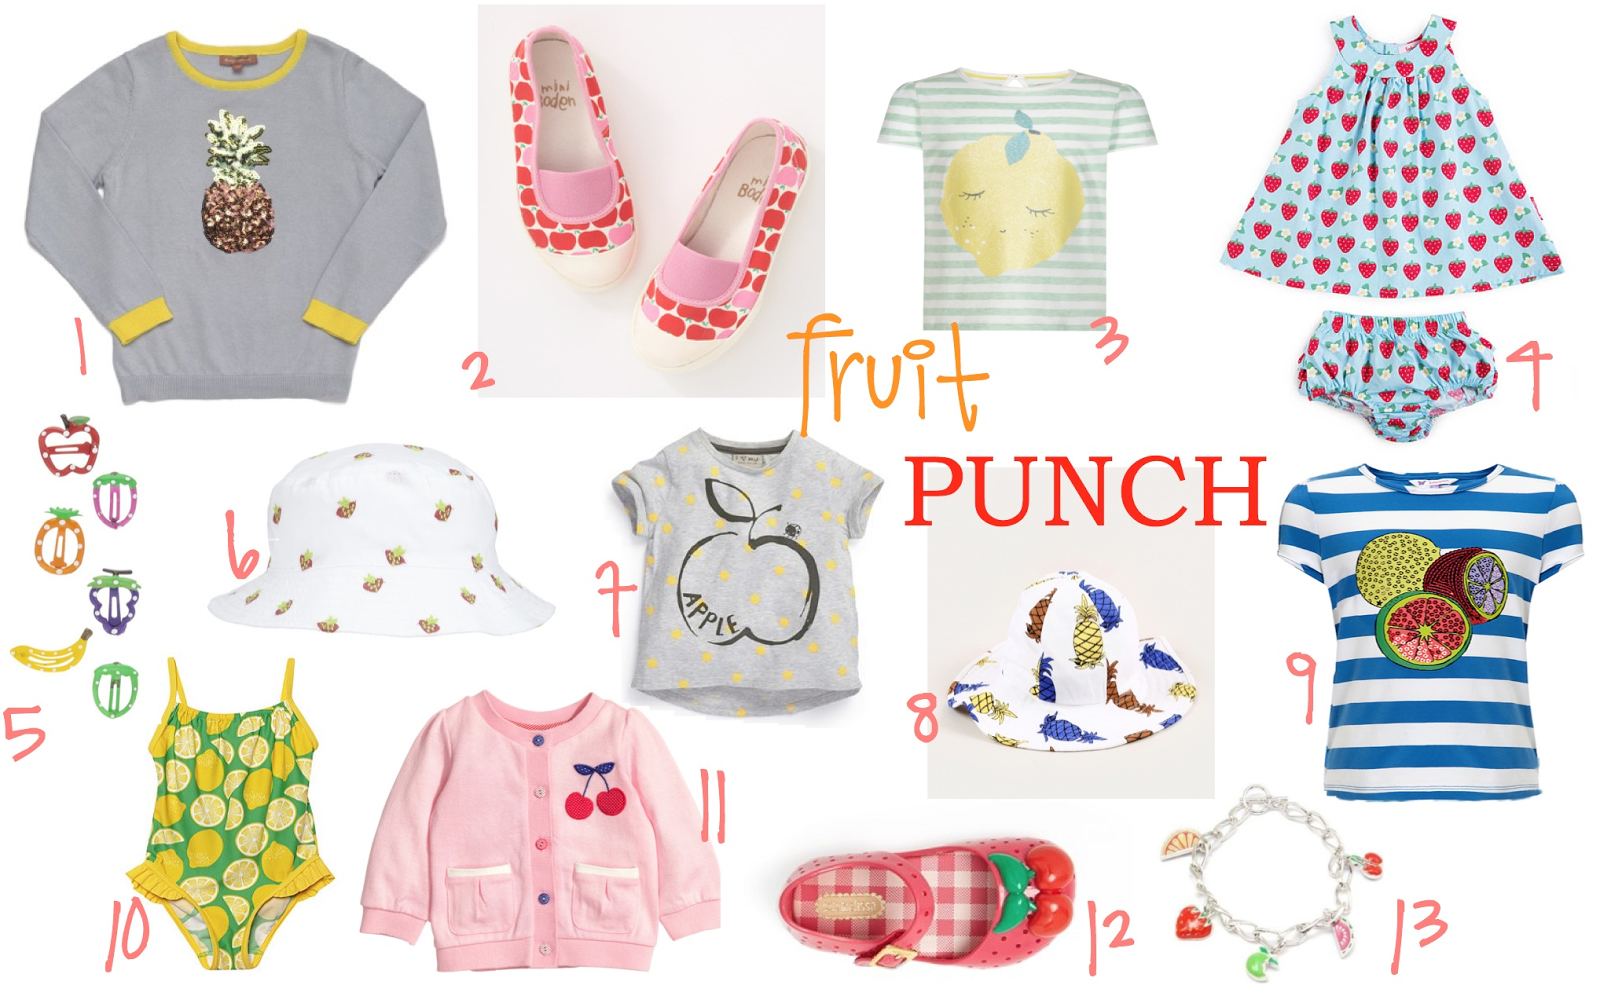 mamasVIB | V. I. BUYS: Time to get fruity! Fabulous & juicy fashion finds for little girls, Fruity fashion buys for little girls from the high street | V. I. BABY, fruit motifs, fruit prints, girls clothes, girls fashion, fashion, fashion trends, kids fashion, spring fashion, alexa and alexa | mothercare | debenhams | H&M | mini rod ini | claires | next | john lewis | boden | i love gorgeous | toby tiger | fruity buys | mamasVIB